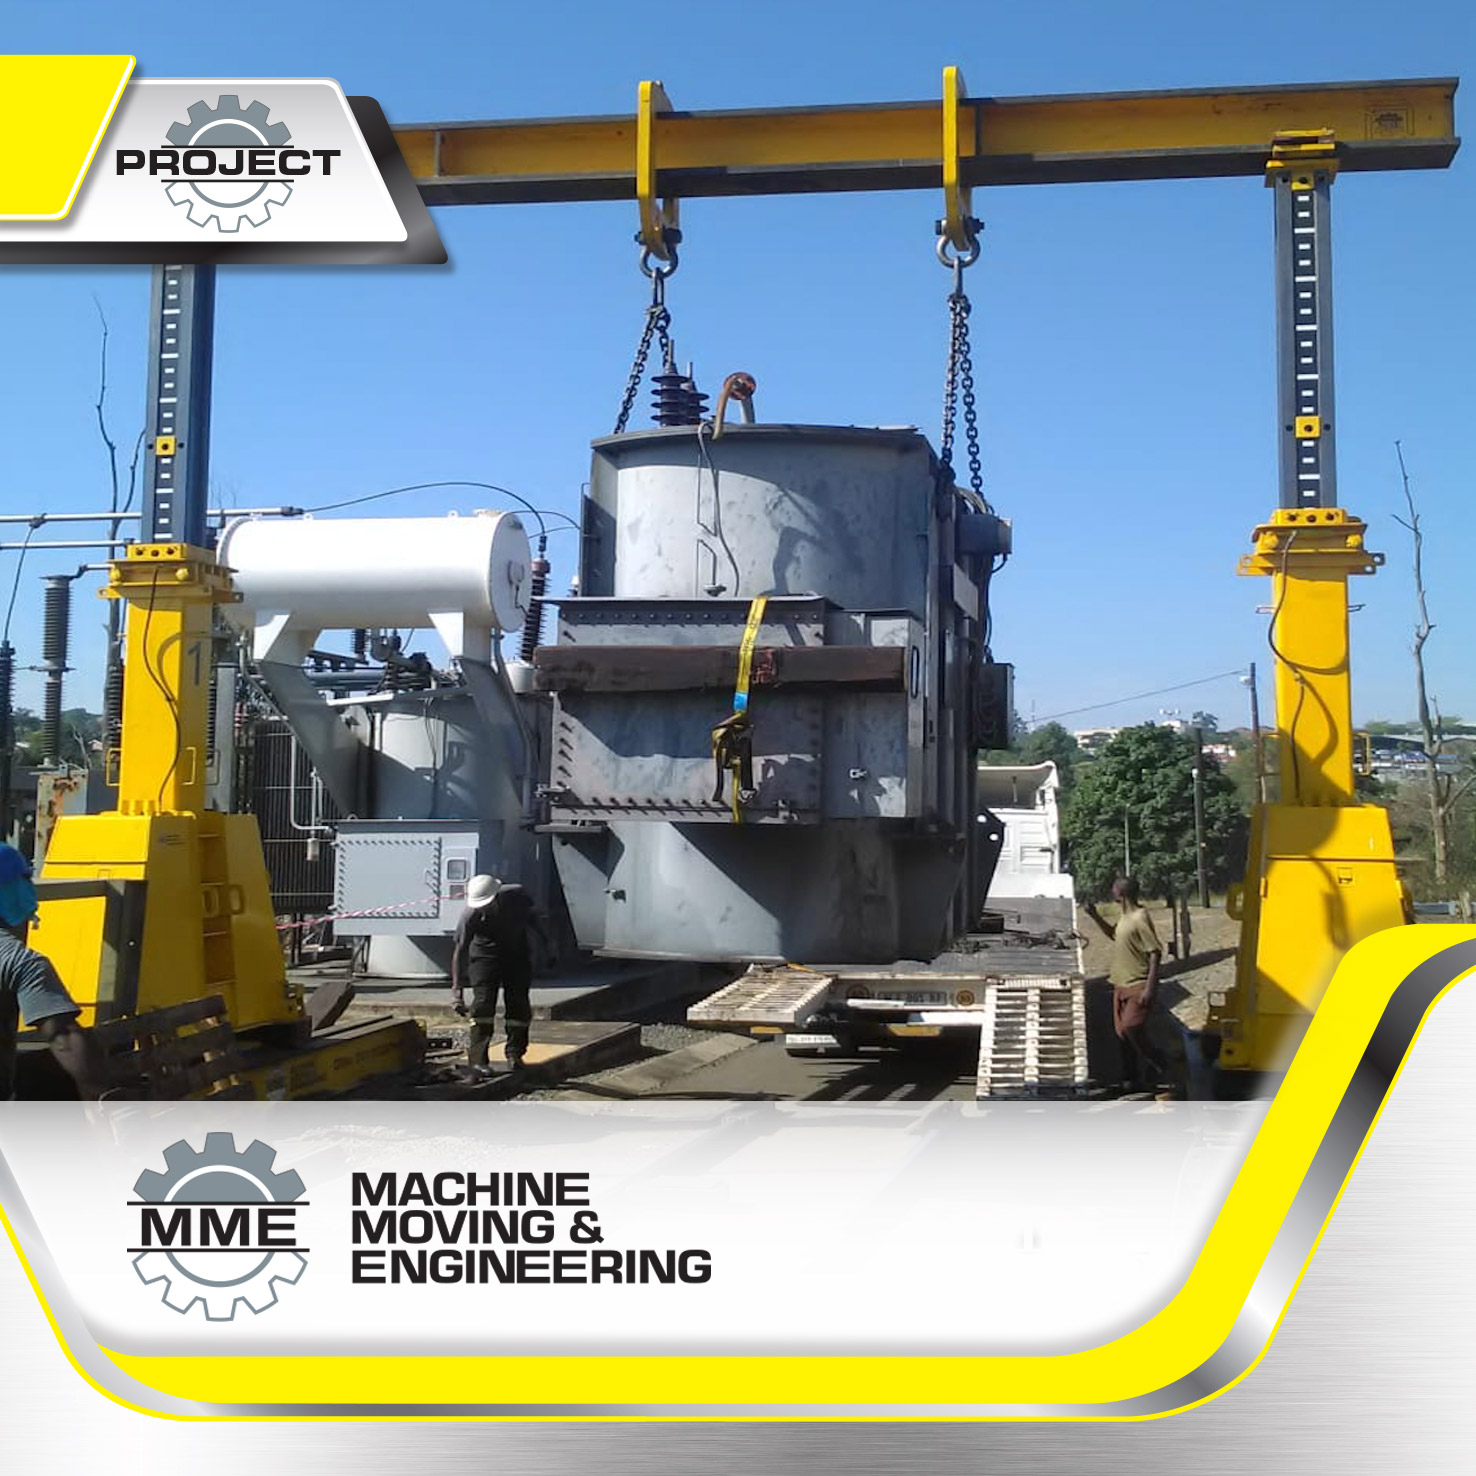 high voltage move mme-projects-mme-machine-moving-engineering-machinery-equipment-gauteng-kwazulu-natal-south-africa-transformer